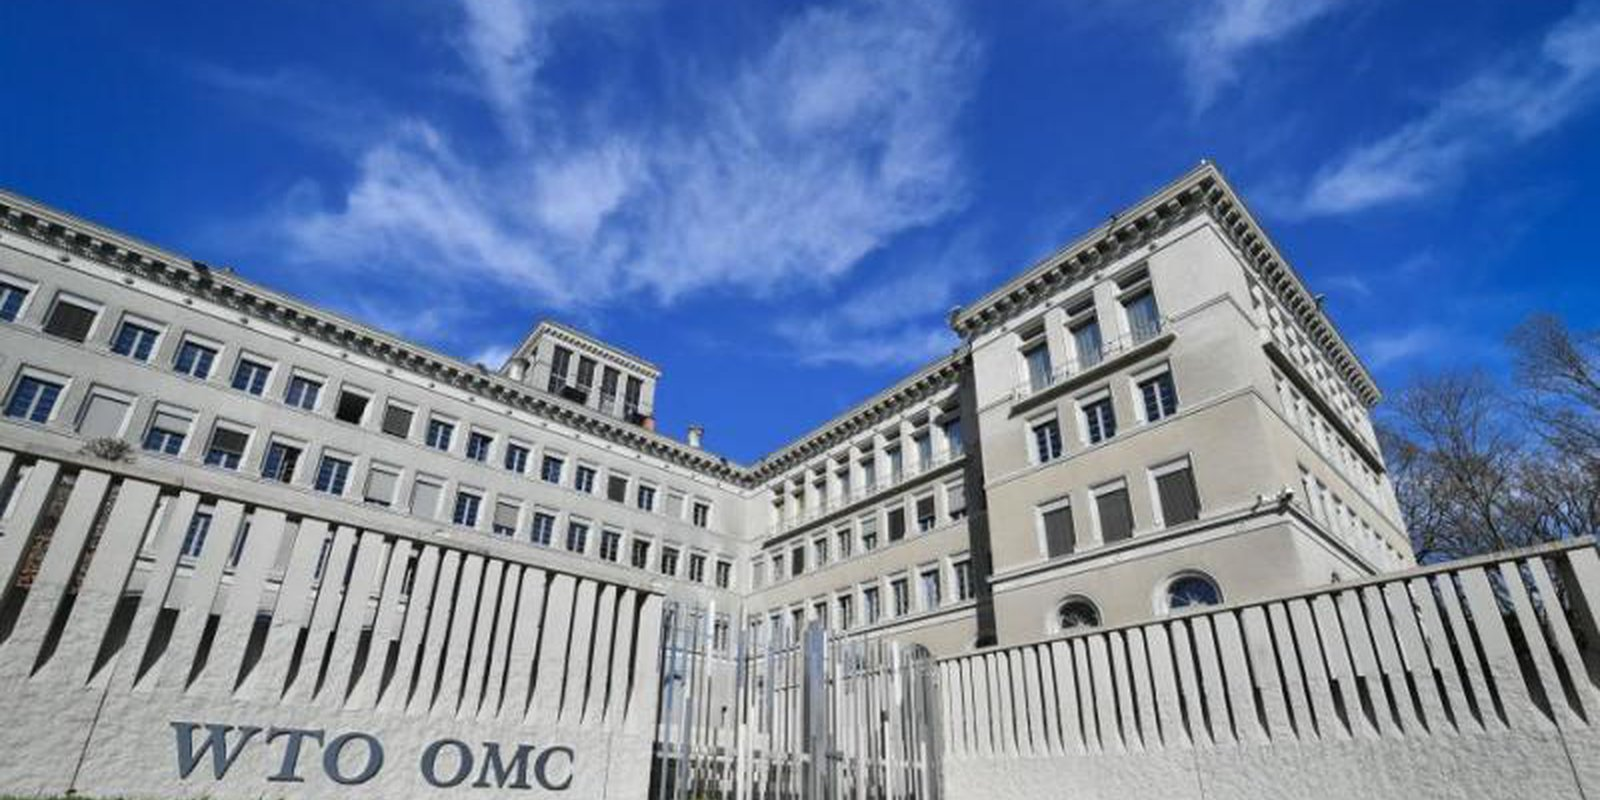 The WTO headquarters in Geneva. Photo: Getty Images.